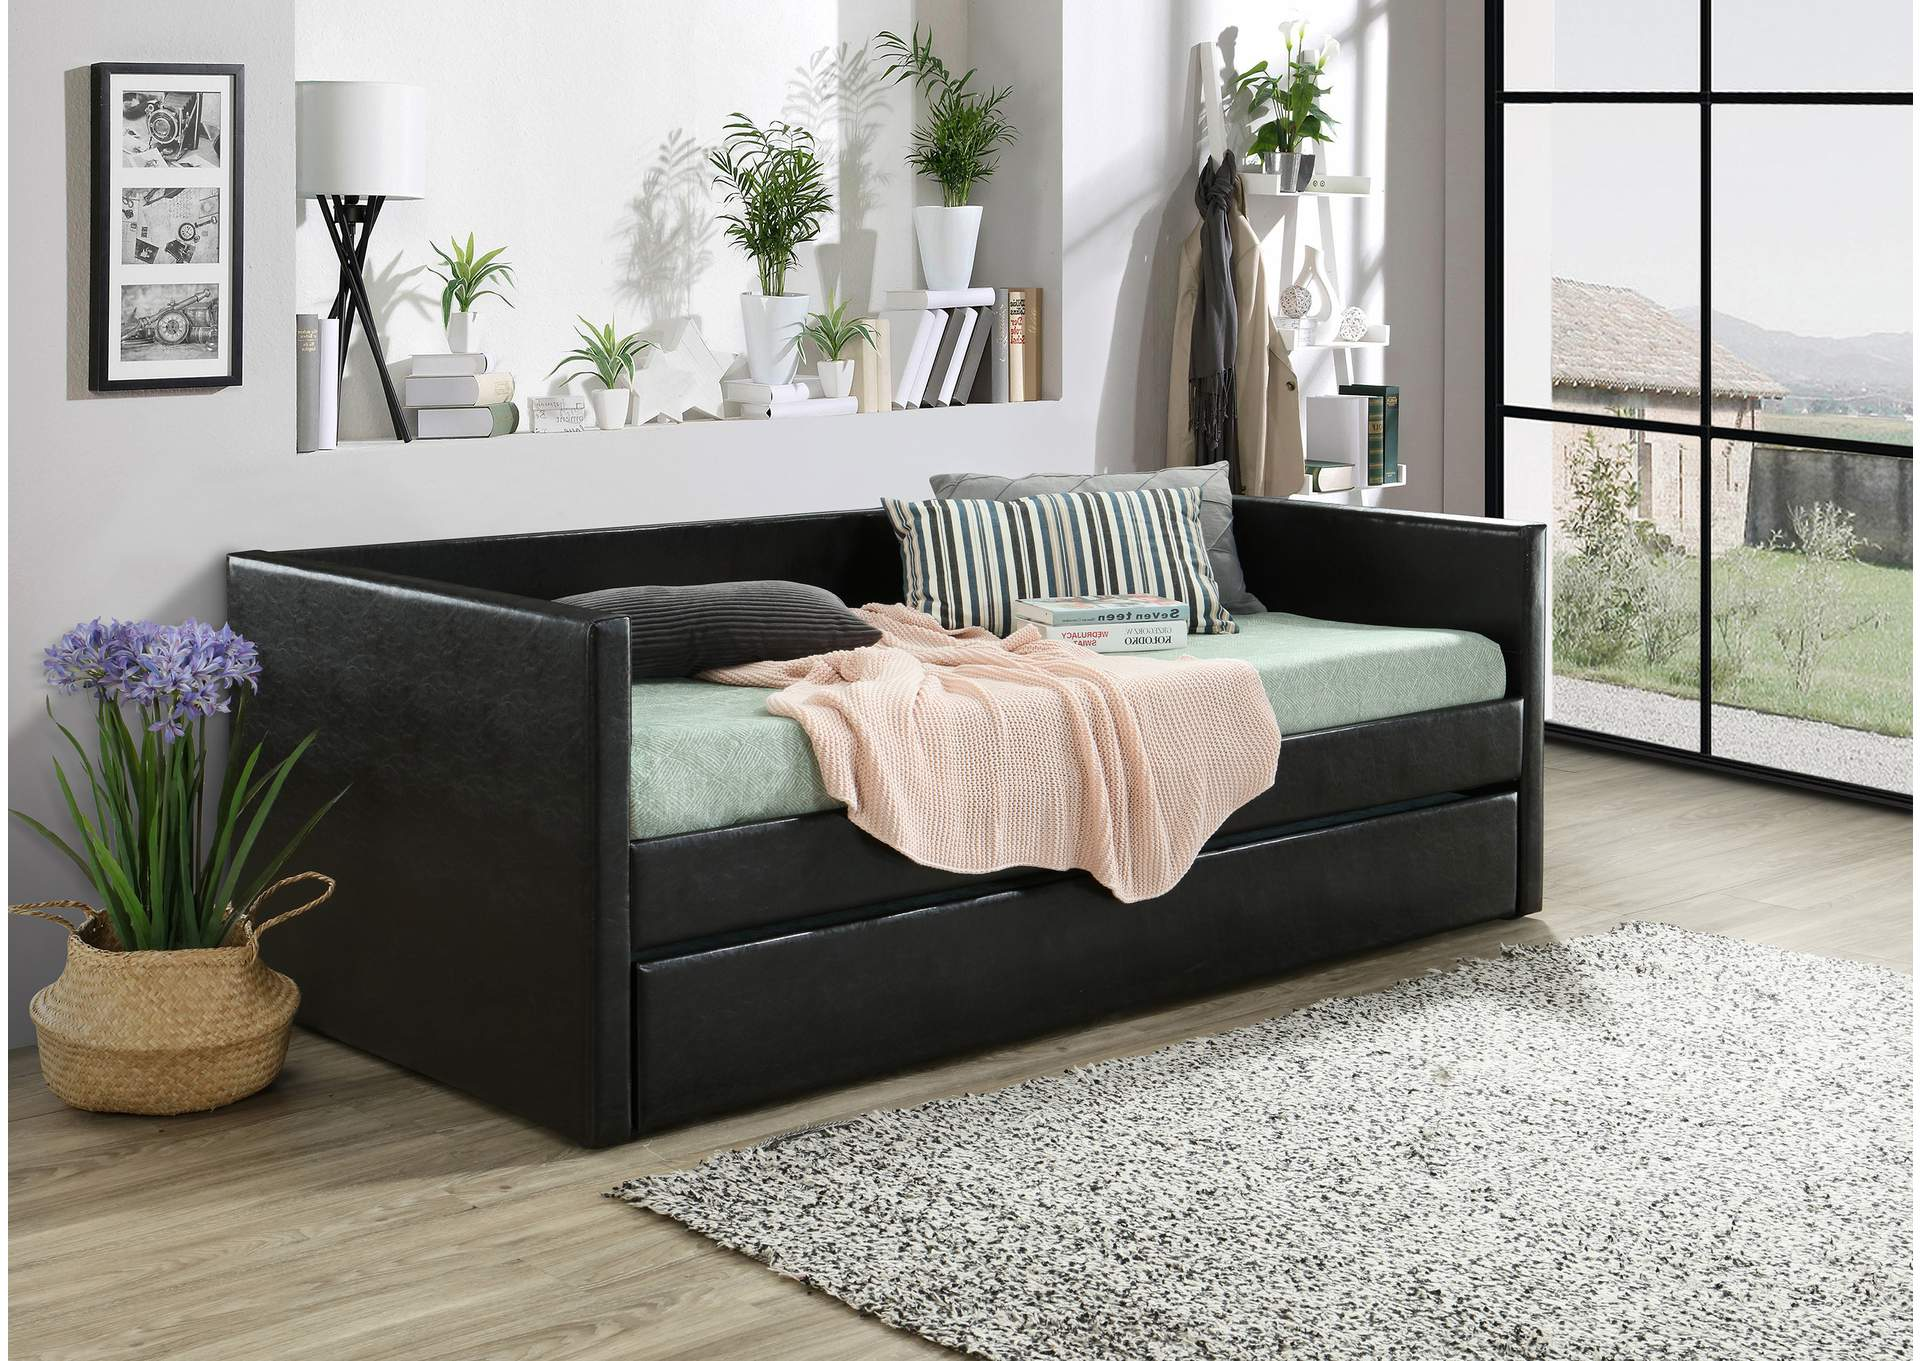 Sadie Black Upholstered Daybed,Crown Mark